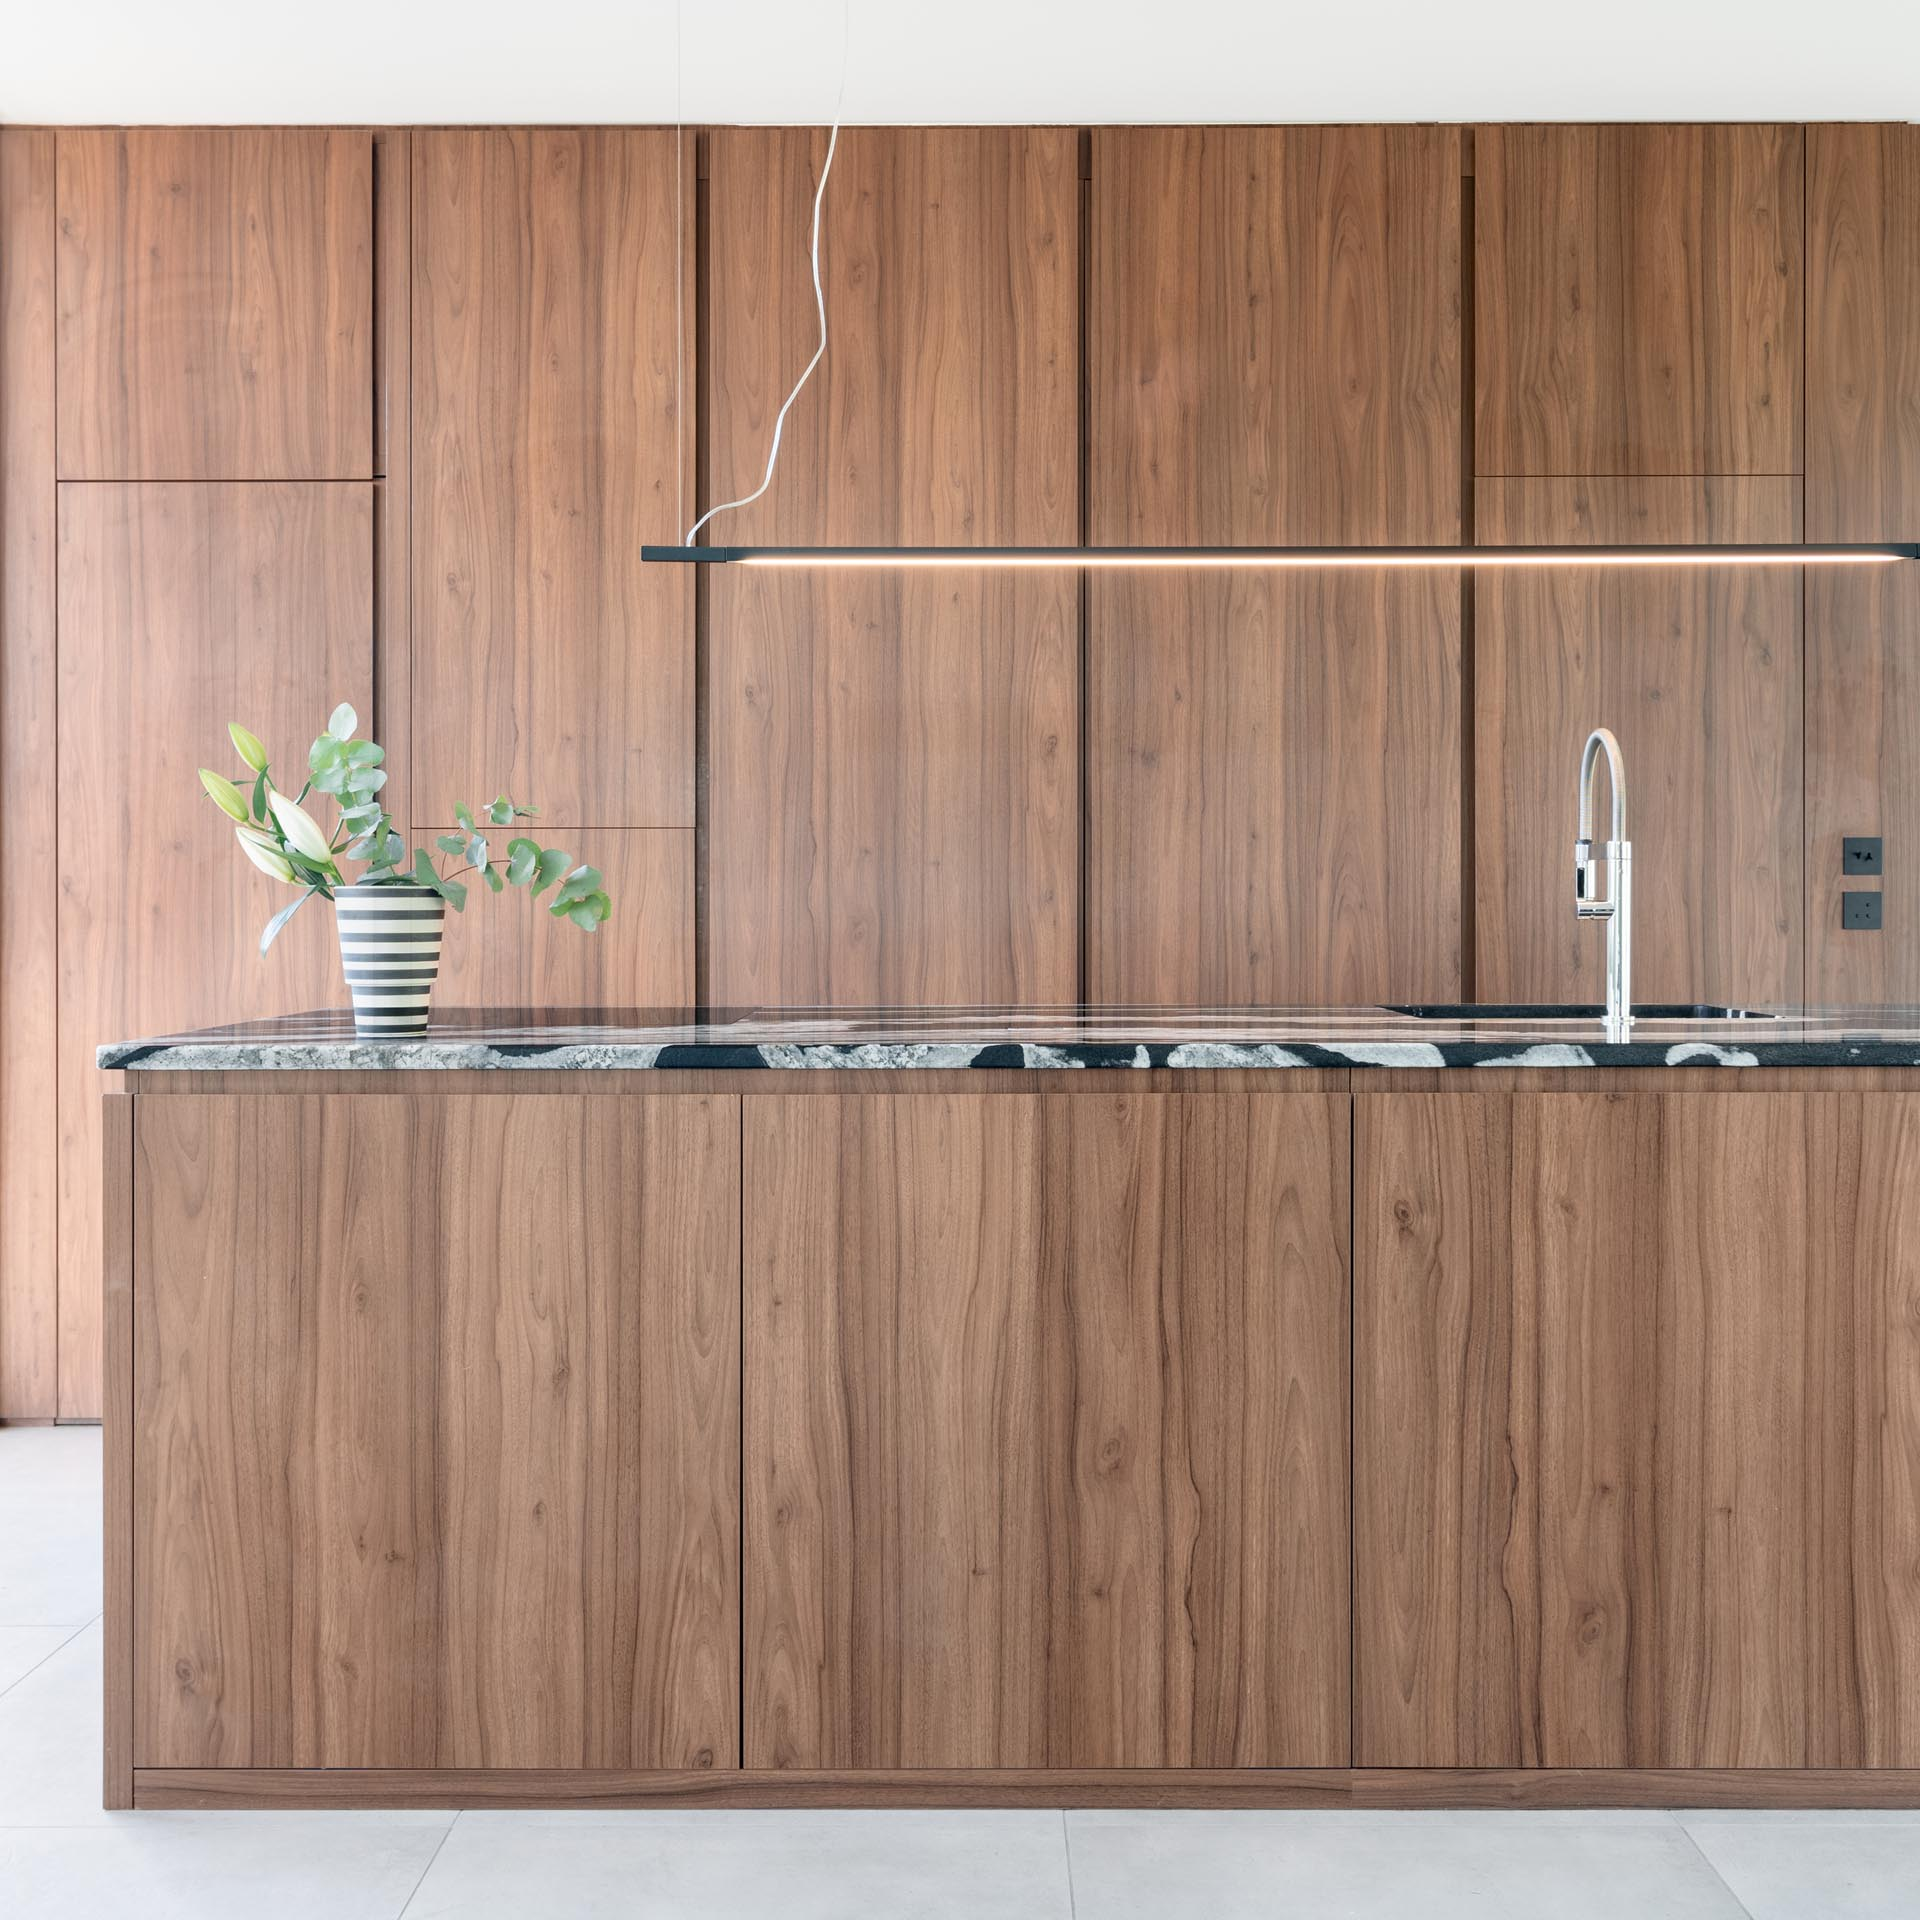 In this modern kitchen, minimalist warm wood cabinets have been used along the wall and the island.